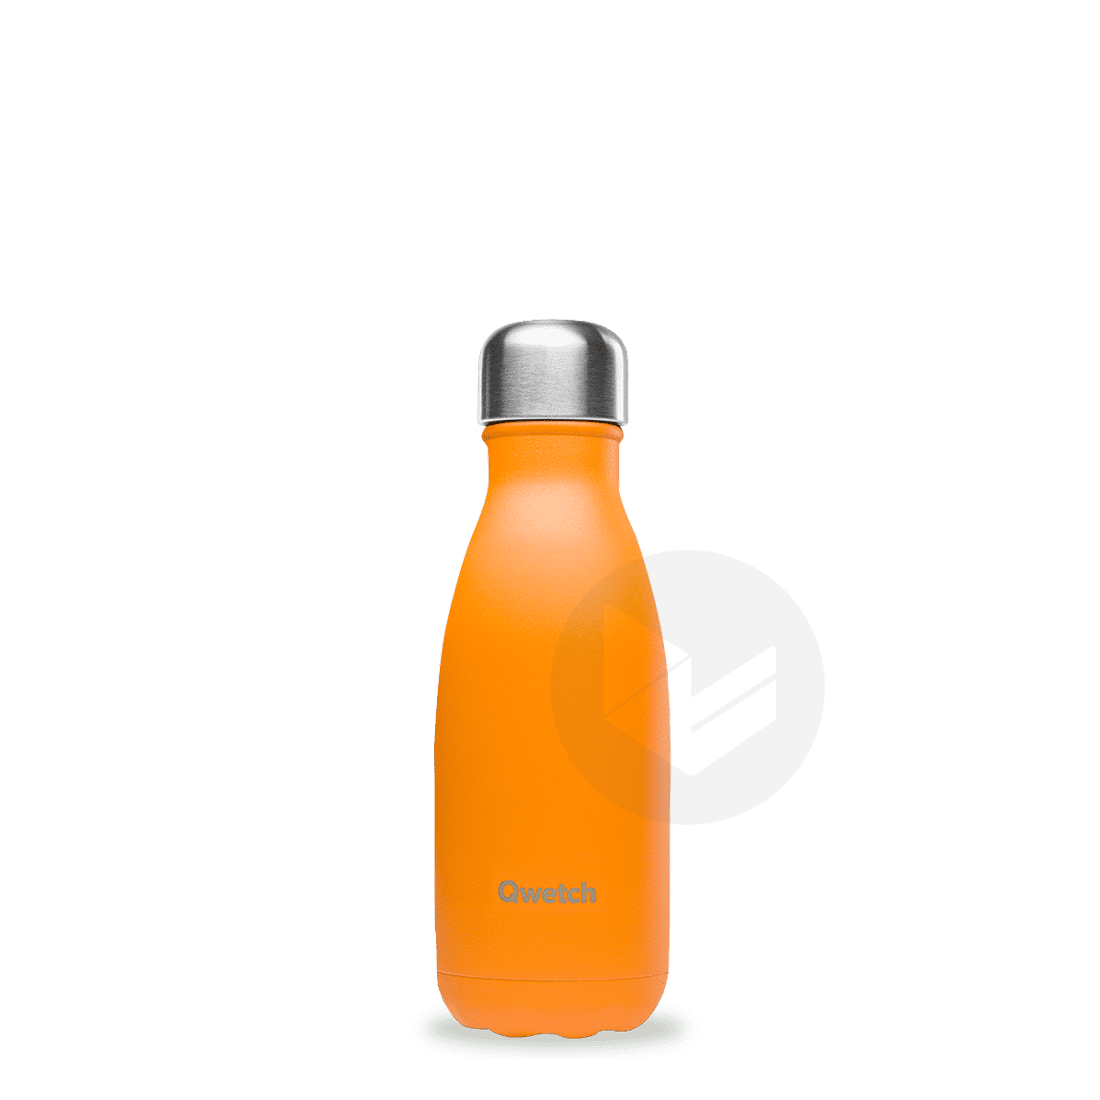 Bouteille isotherme inox safran 260ml